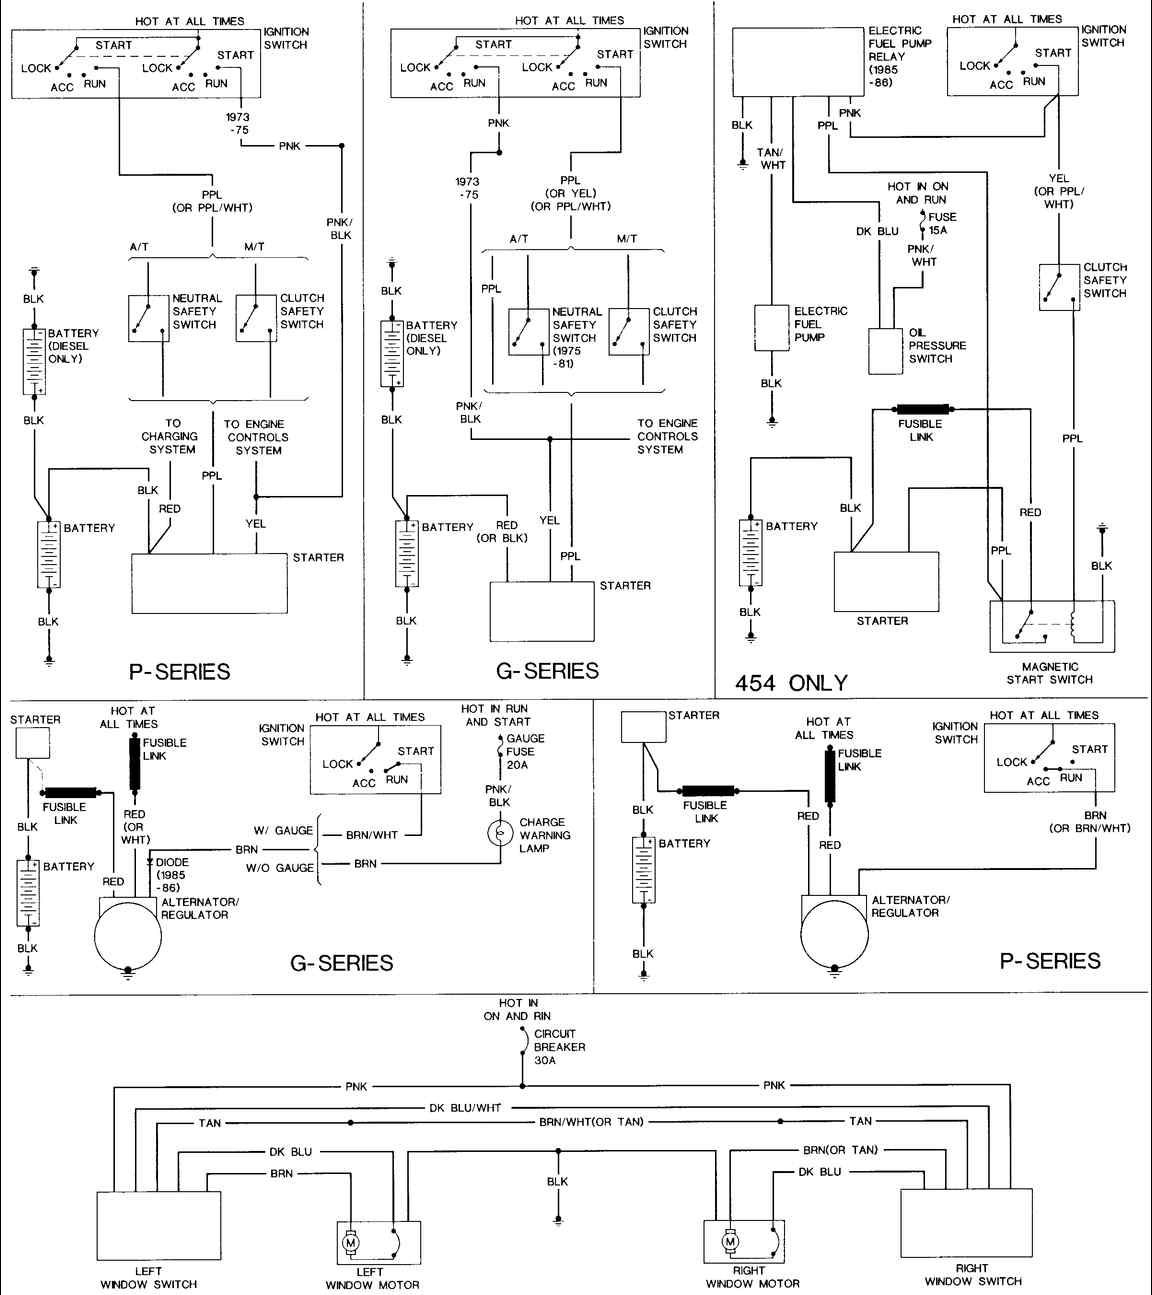 0c73623a181dc376dbb4777e2029d285 85 chevy truck wiring diagram 85 chevy van the steering column chevy starter wiring diagram at crackthecode.co